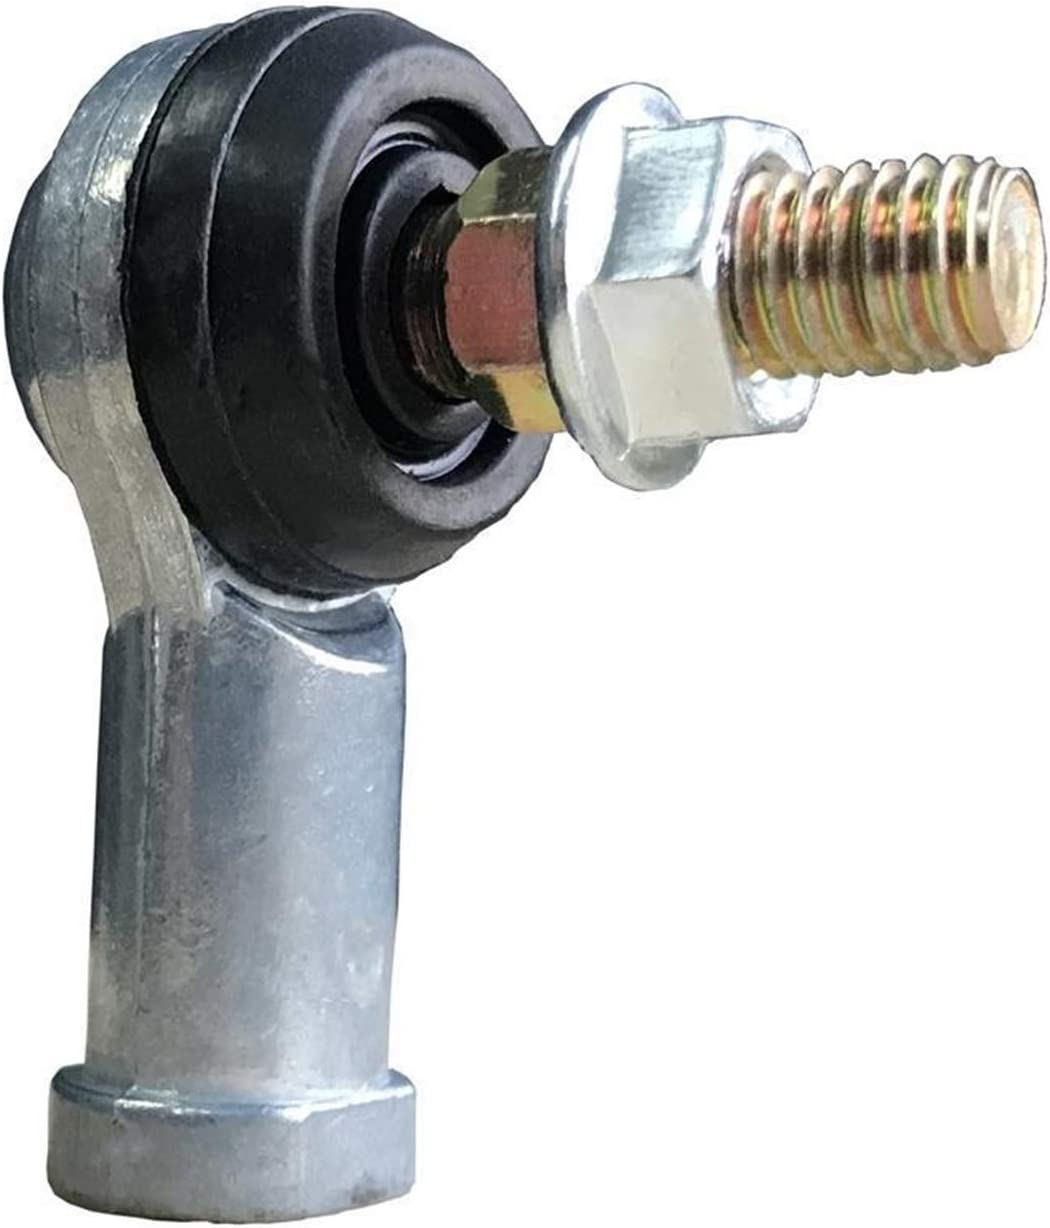 QJKW axis Large-scale sale M8x1.25 Special Campaign zinc Alloy Simple Pre Installation Ball Joint